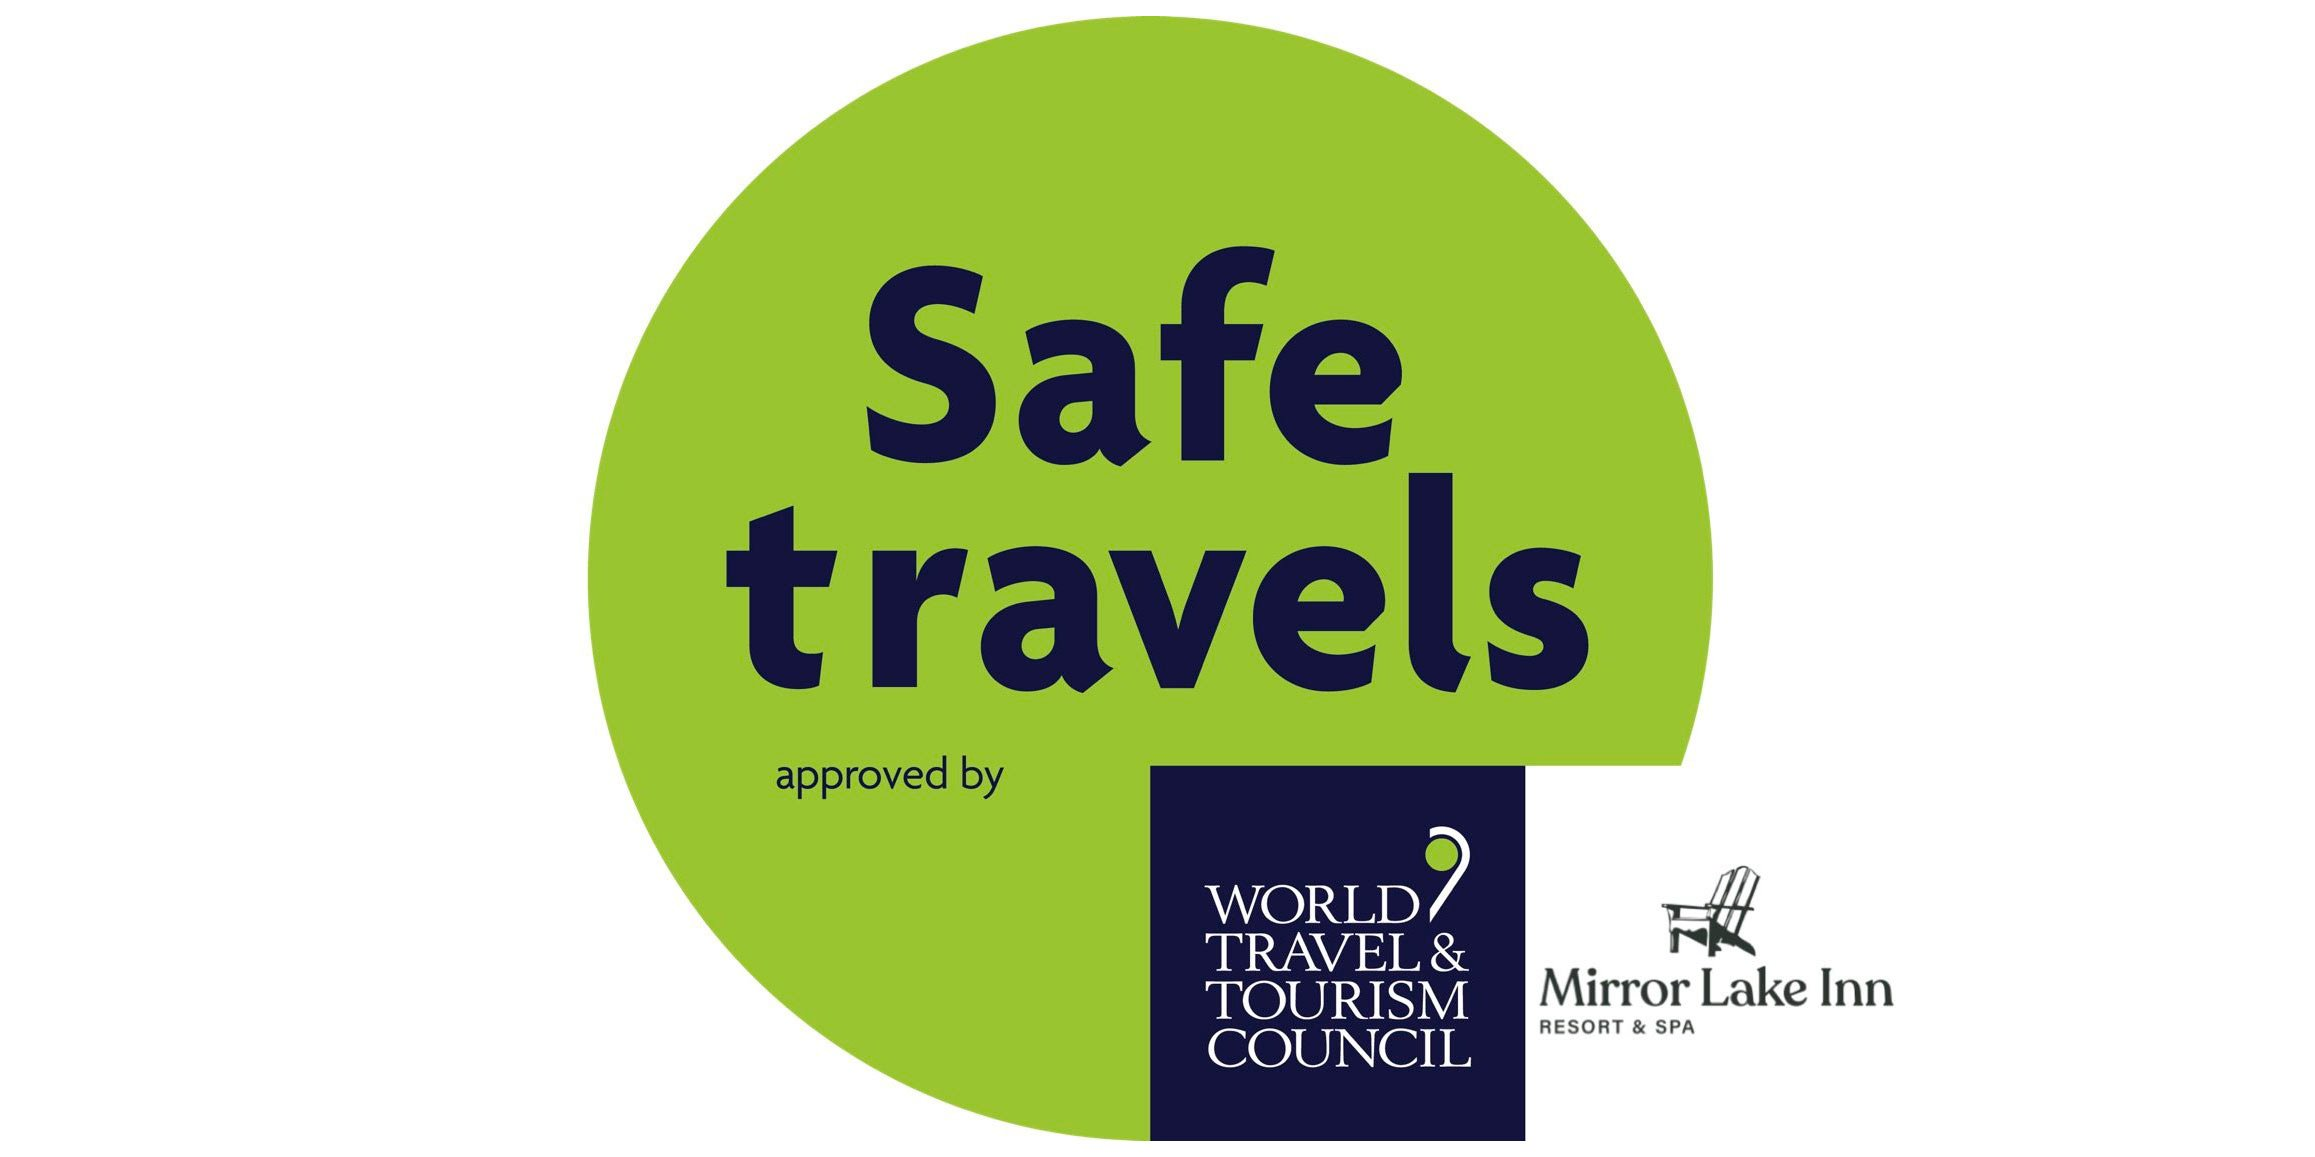 Safe Travels approved by the World Travel & Tourism Council for Mirror Lake Inn